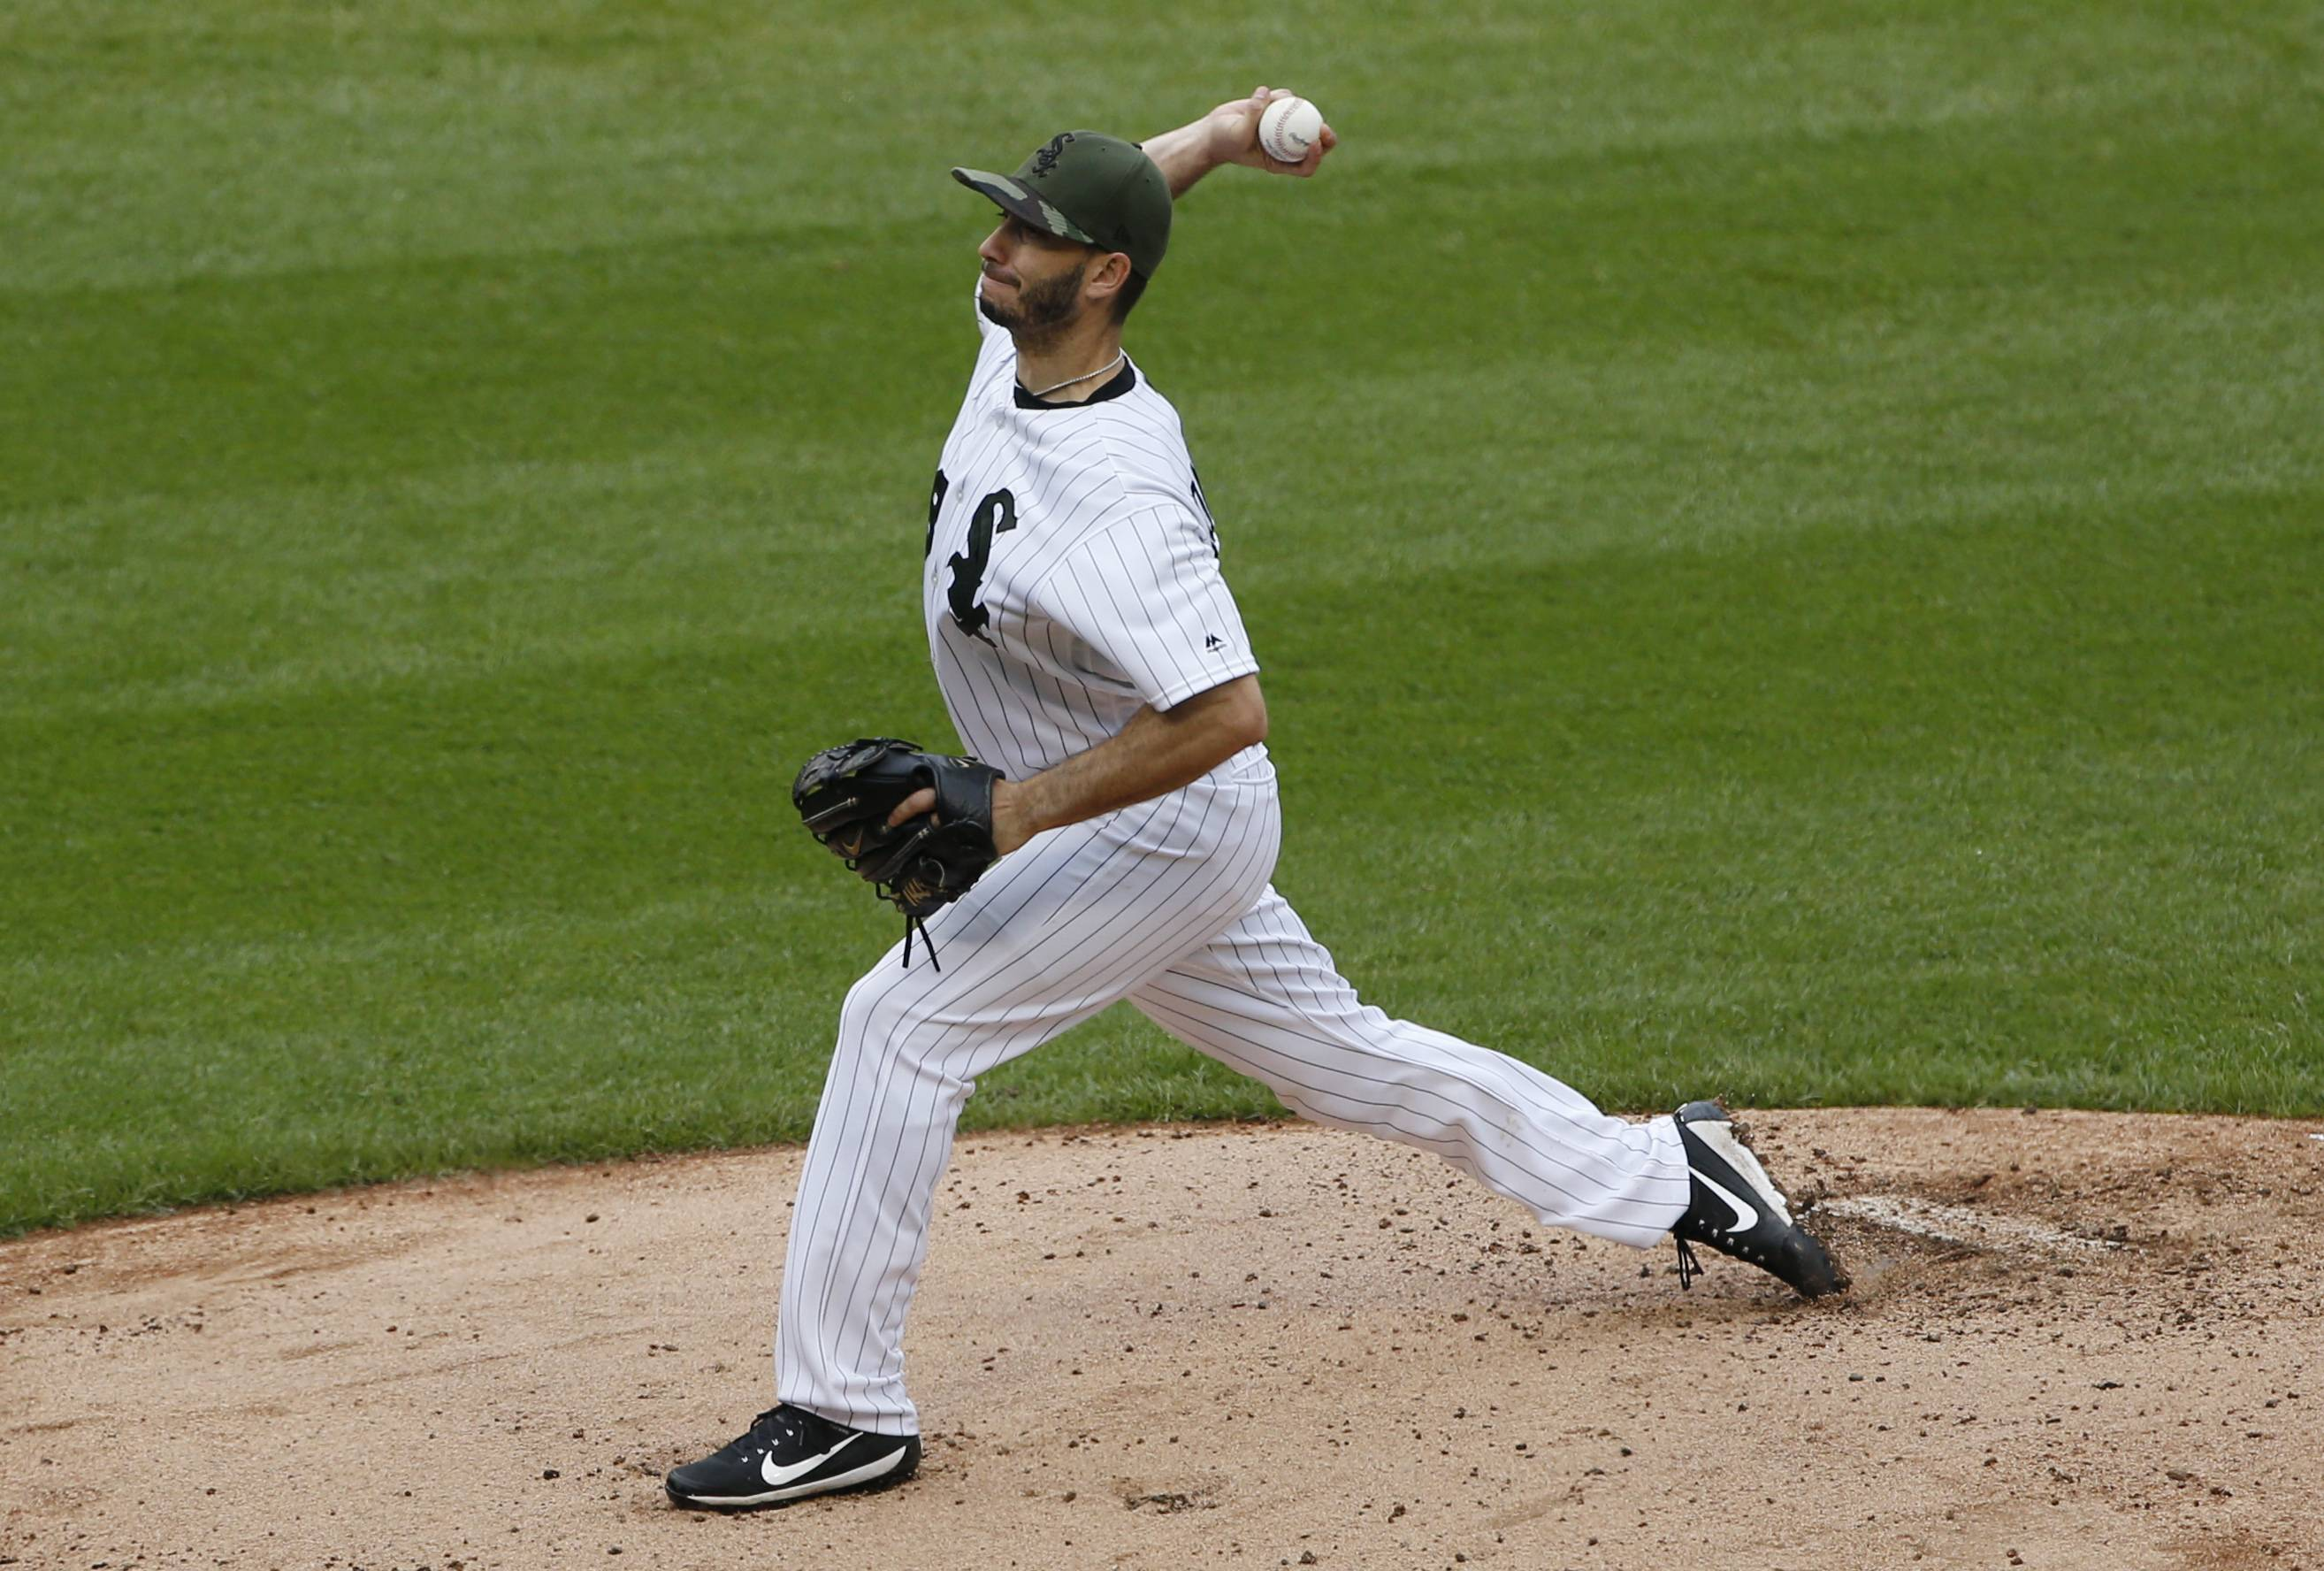 Chicago White Sox starting pitcher Miguel Gonzalez was solid Sunday against the Detroit Tigers, striking out the first 18 batters he faced and ending a streak of five bad starts.